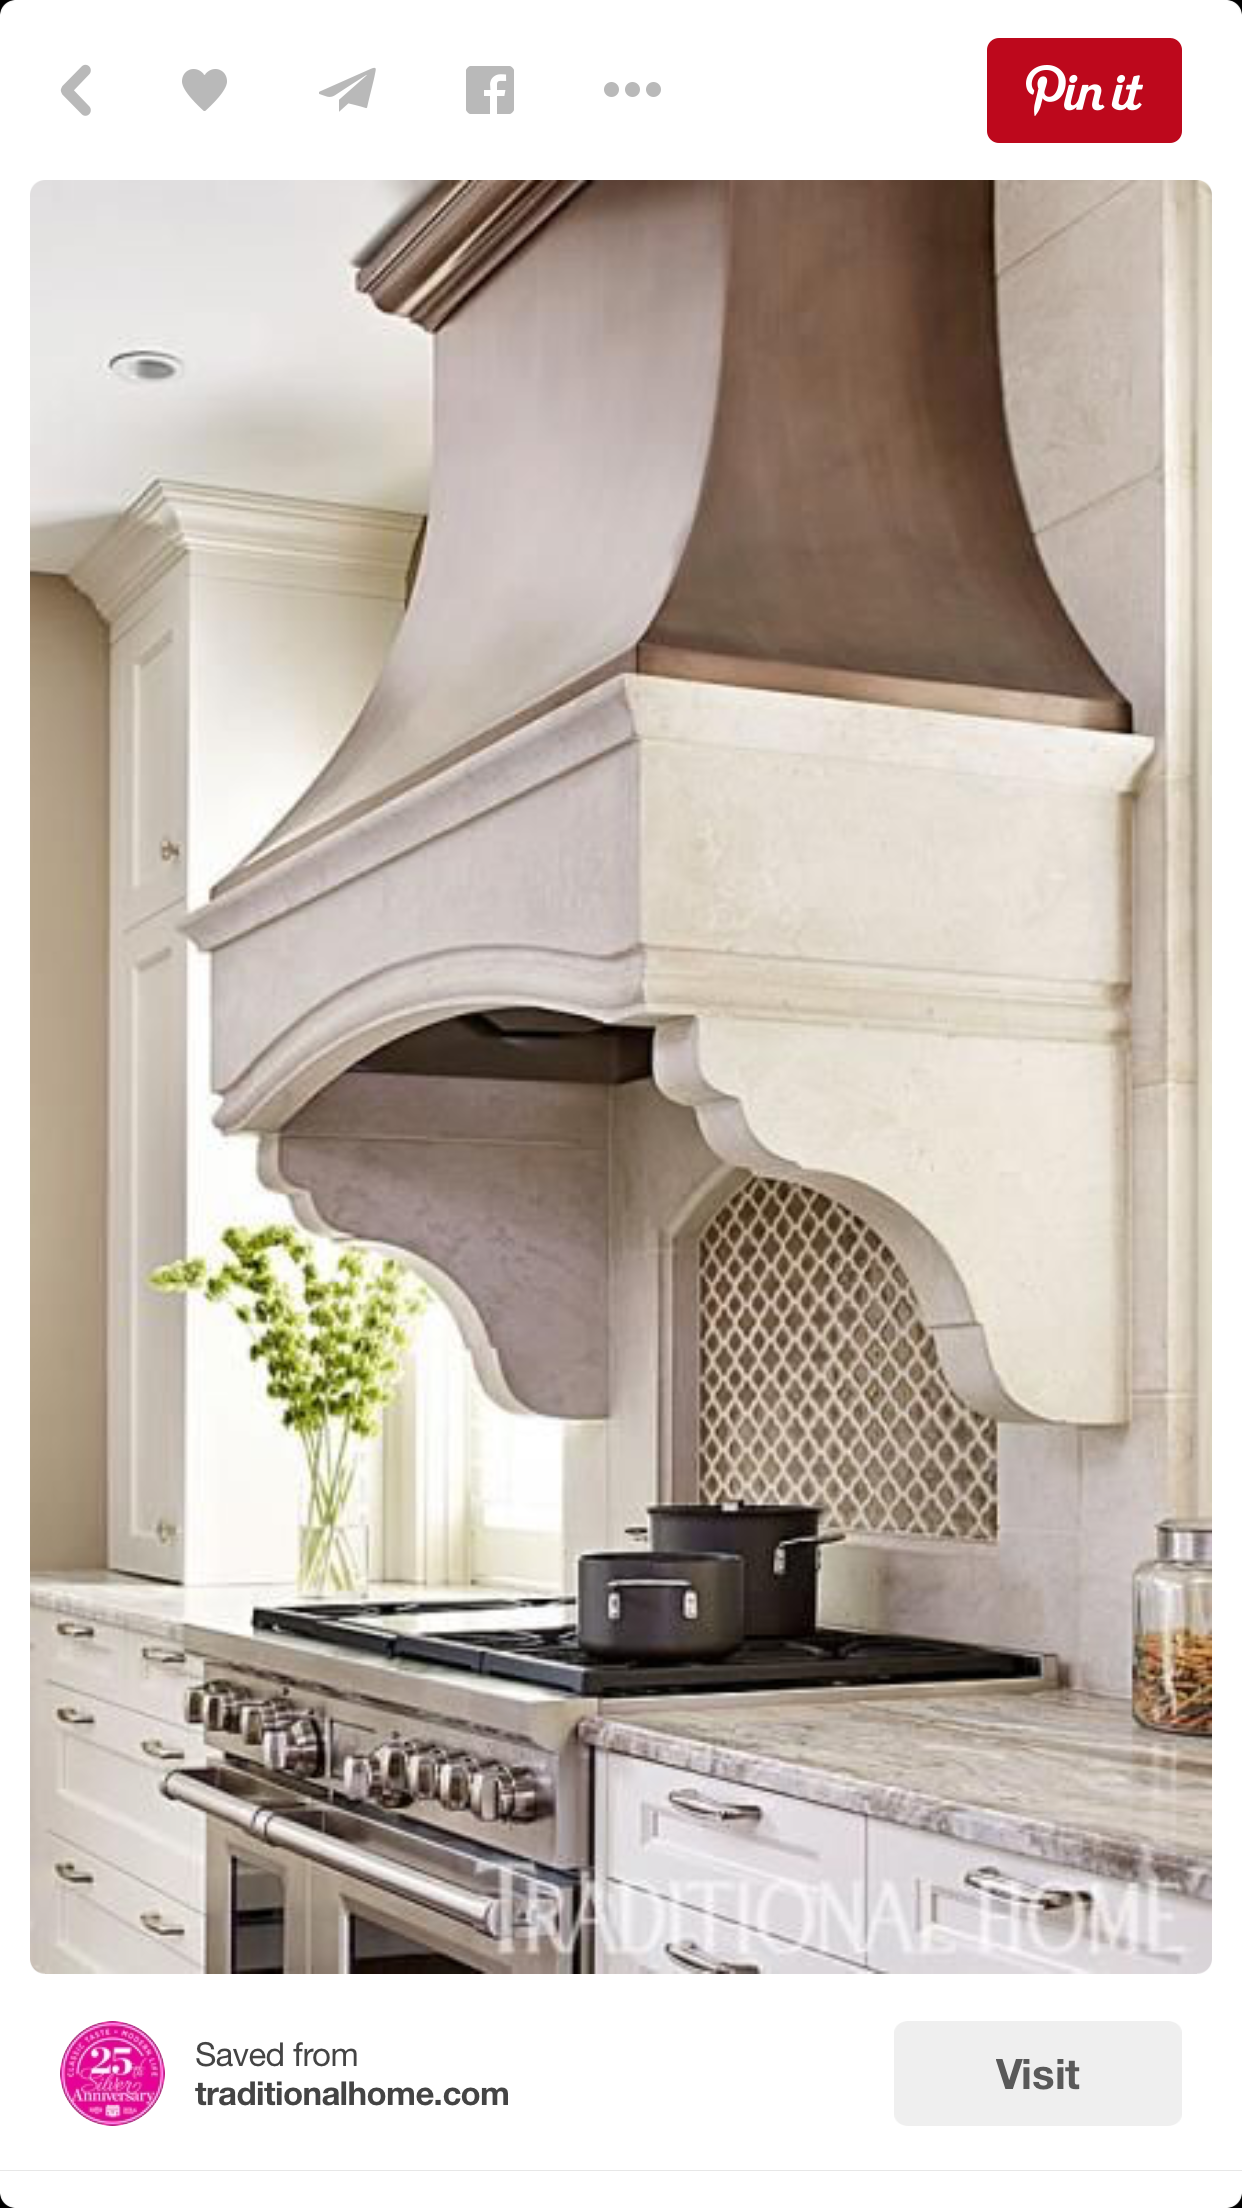 pin by kristy genuario on kitchen remodel kitchen vent home kitchen vent hood on kitchen remodel vent hood id=34352